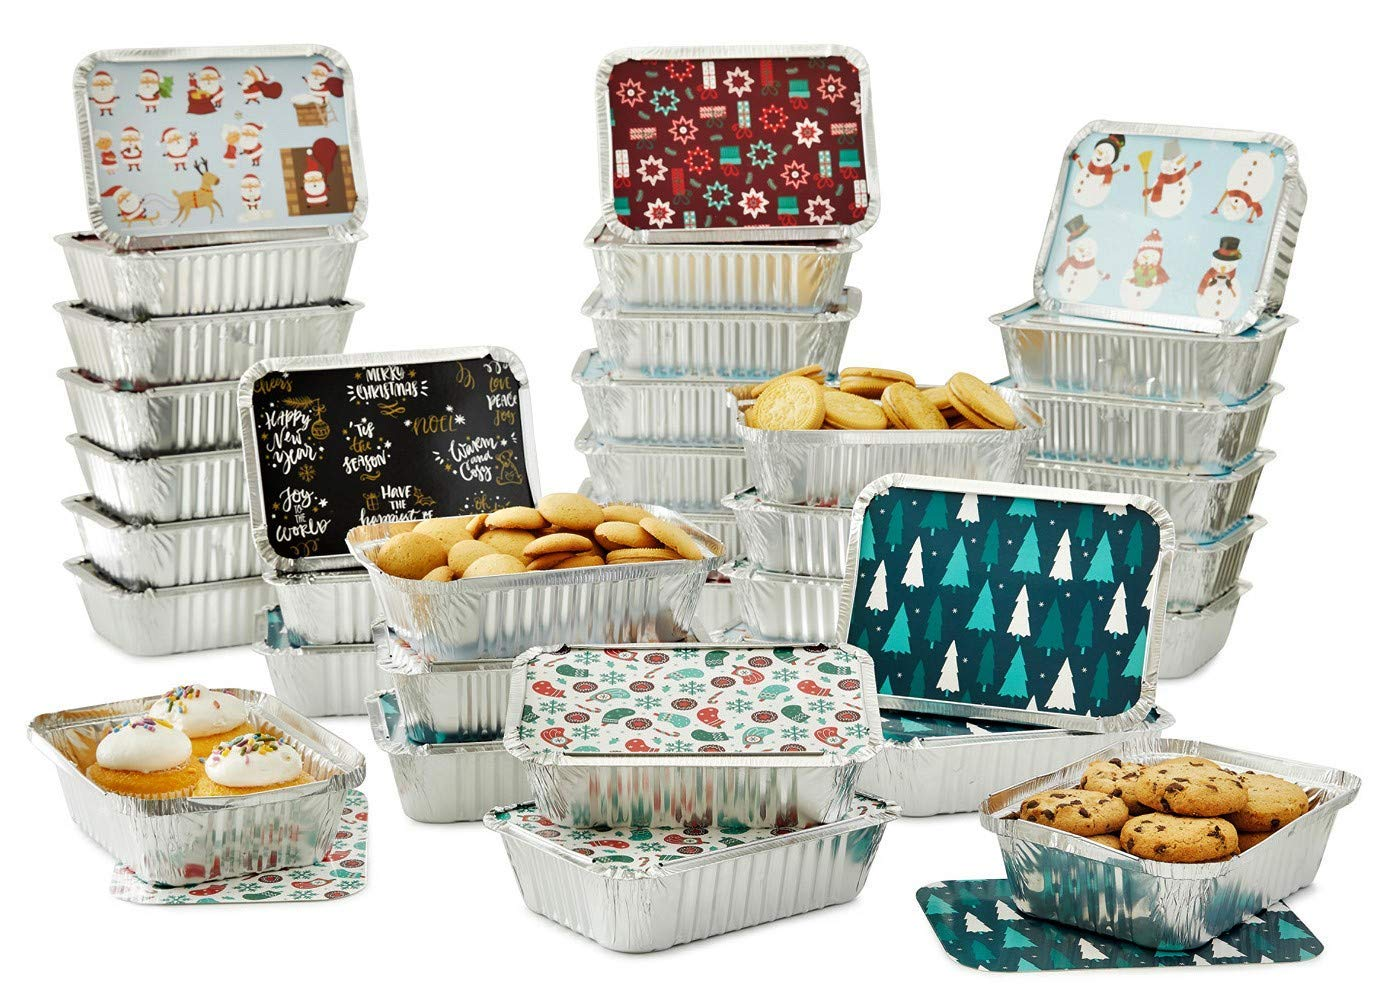 "Set of 36 Christmas Treat Foil Containers - 6 Holiday Designs, Snowman & Santa Festive Cover Print - 7""L x 5""W x 1.5""D - Disposable Food Storage Pan for Party Leftovers or Cookie Exchange"